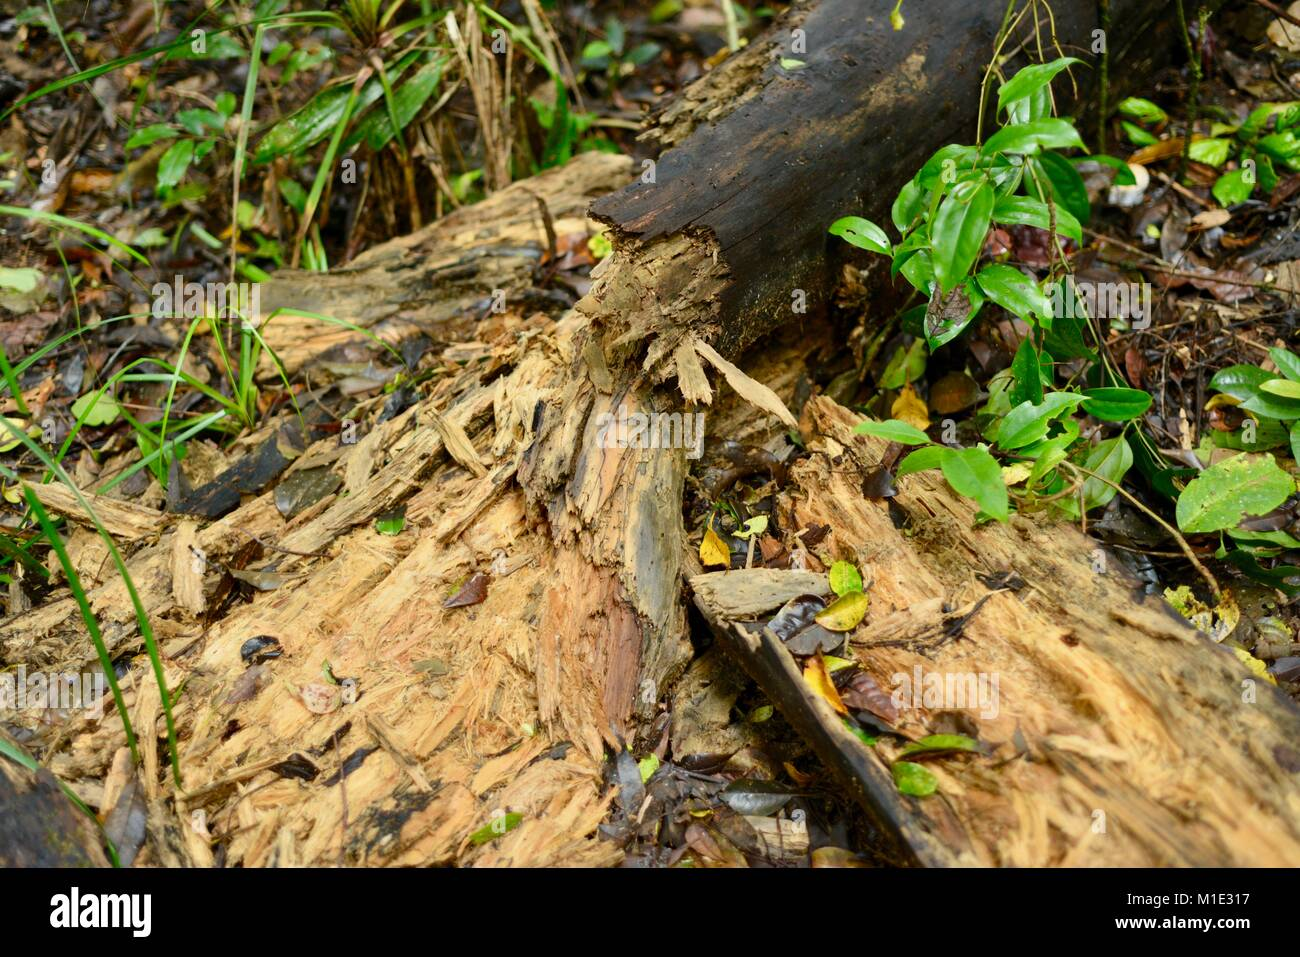 Rotting log broken apart by wild pigs, Paluma range national park, Queensland, Australia - Stock Image